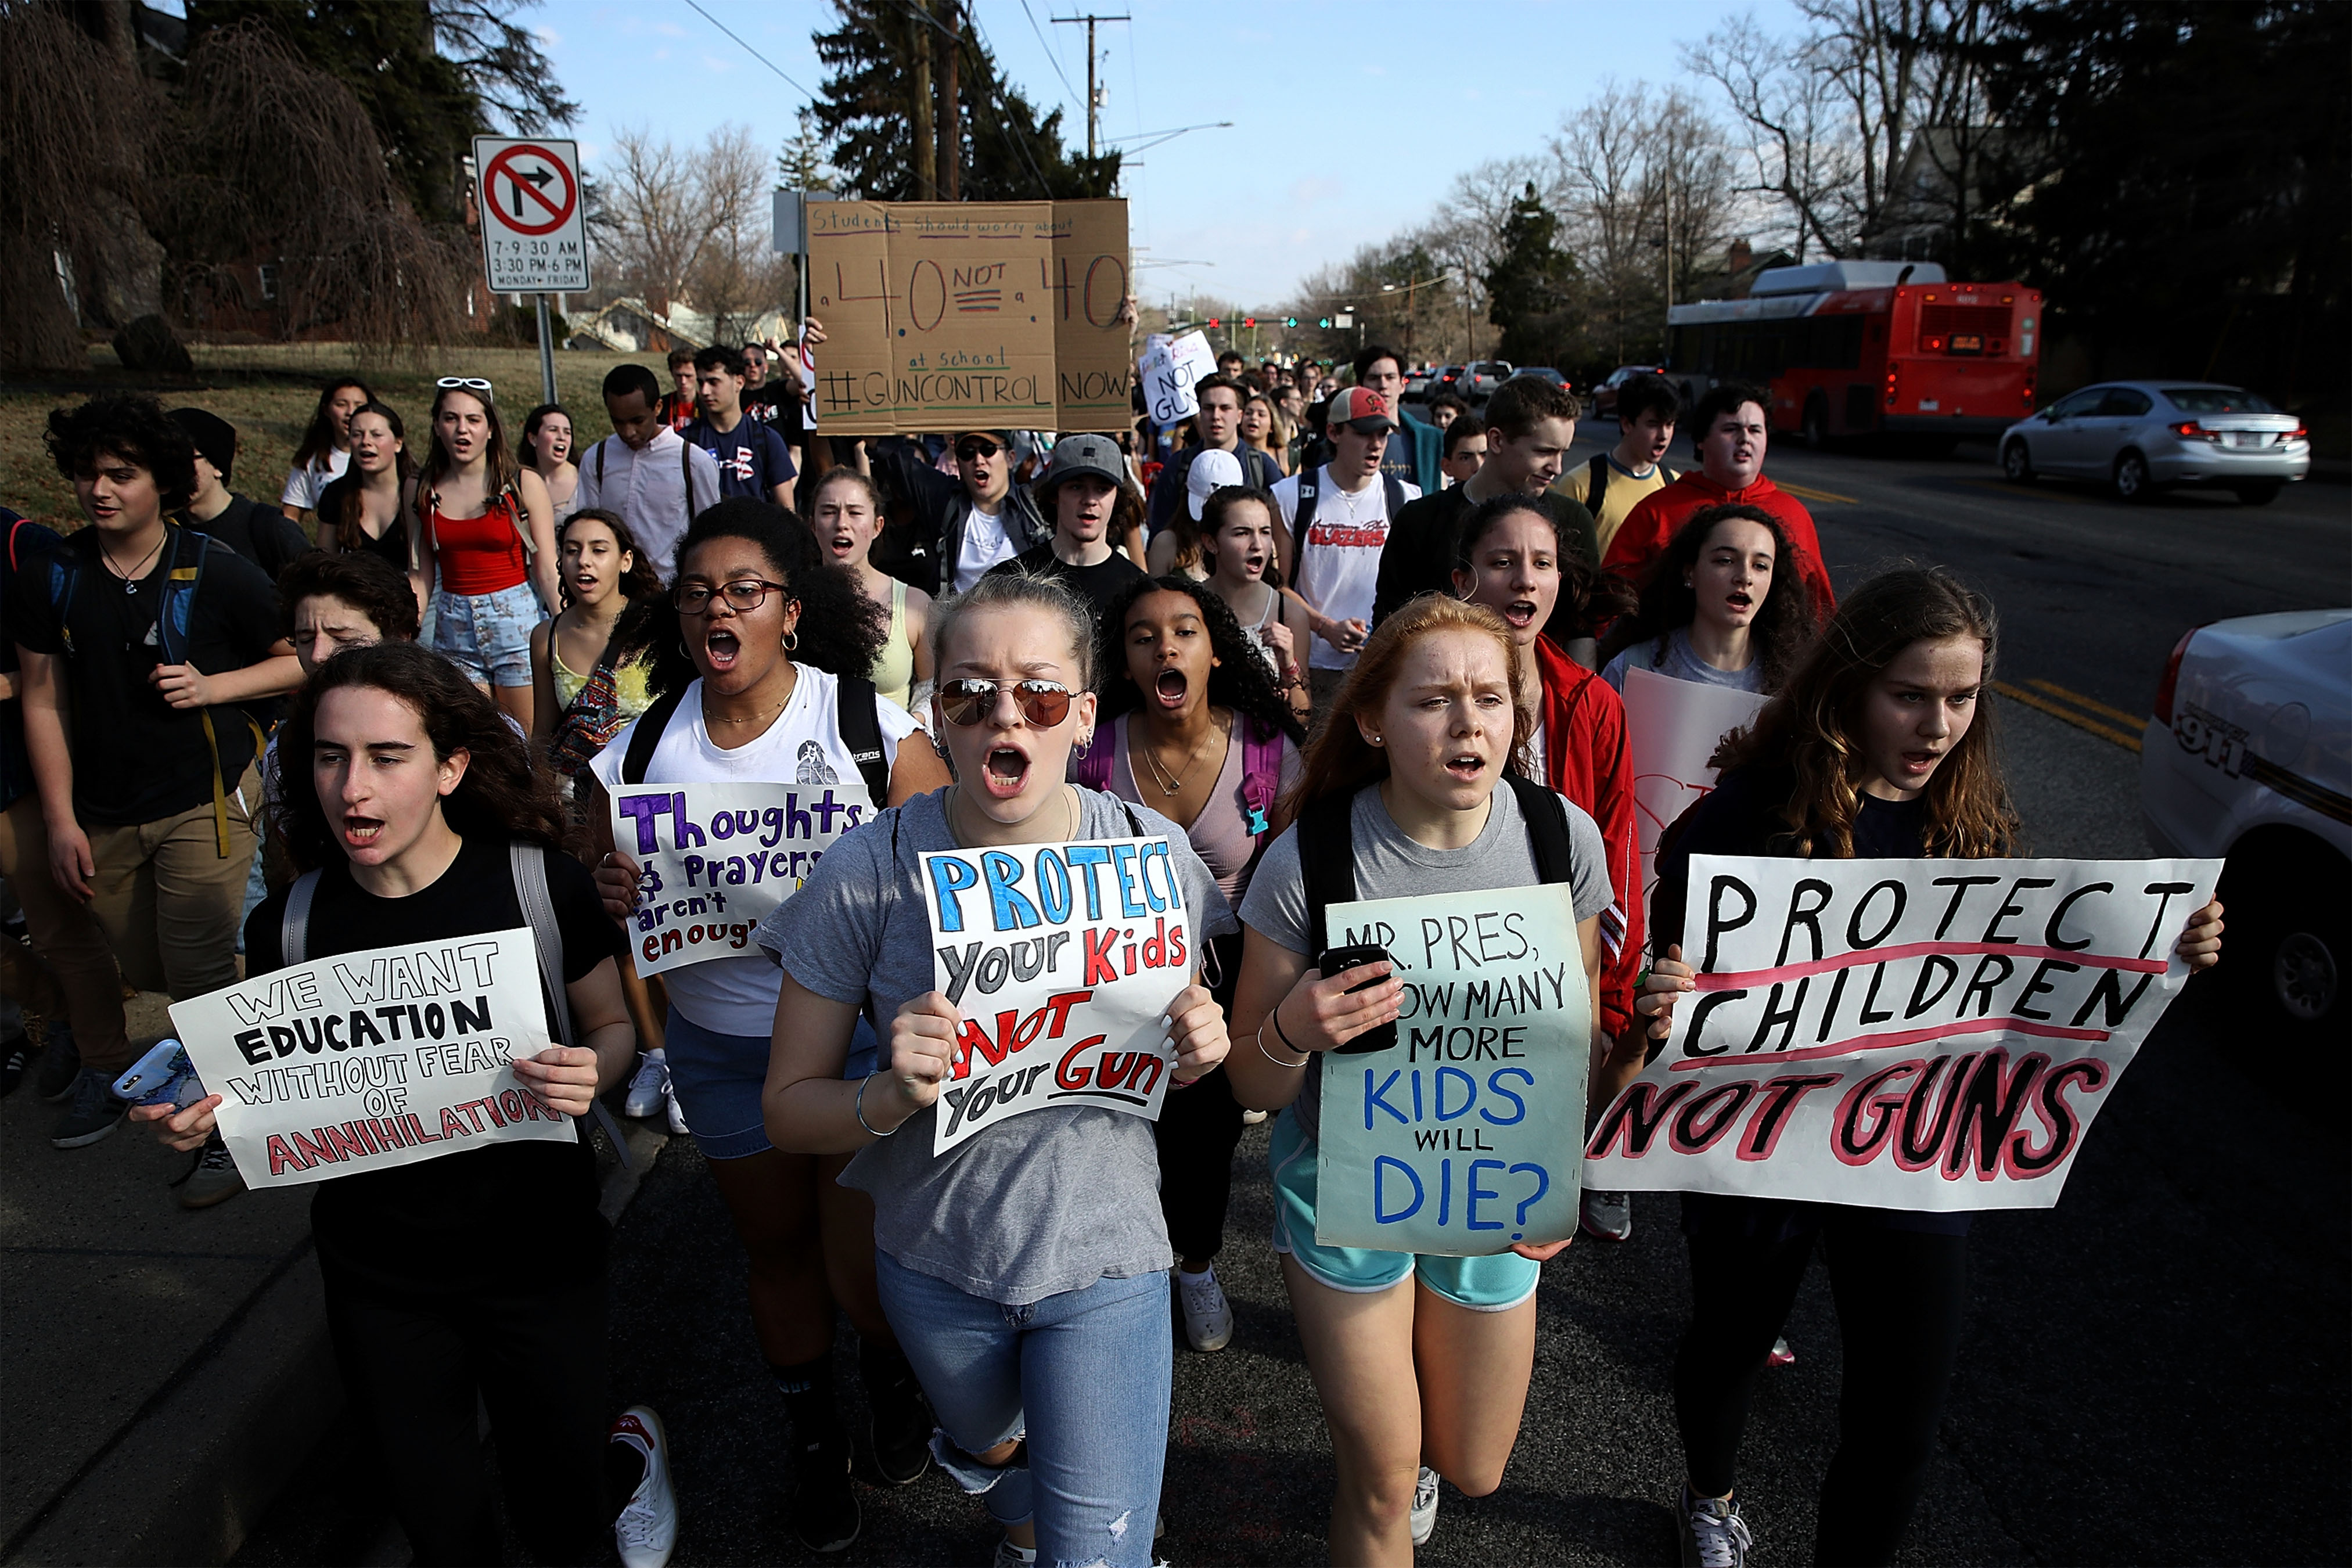 Schools Weigh Consequences For Students Protesting Gun